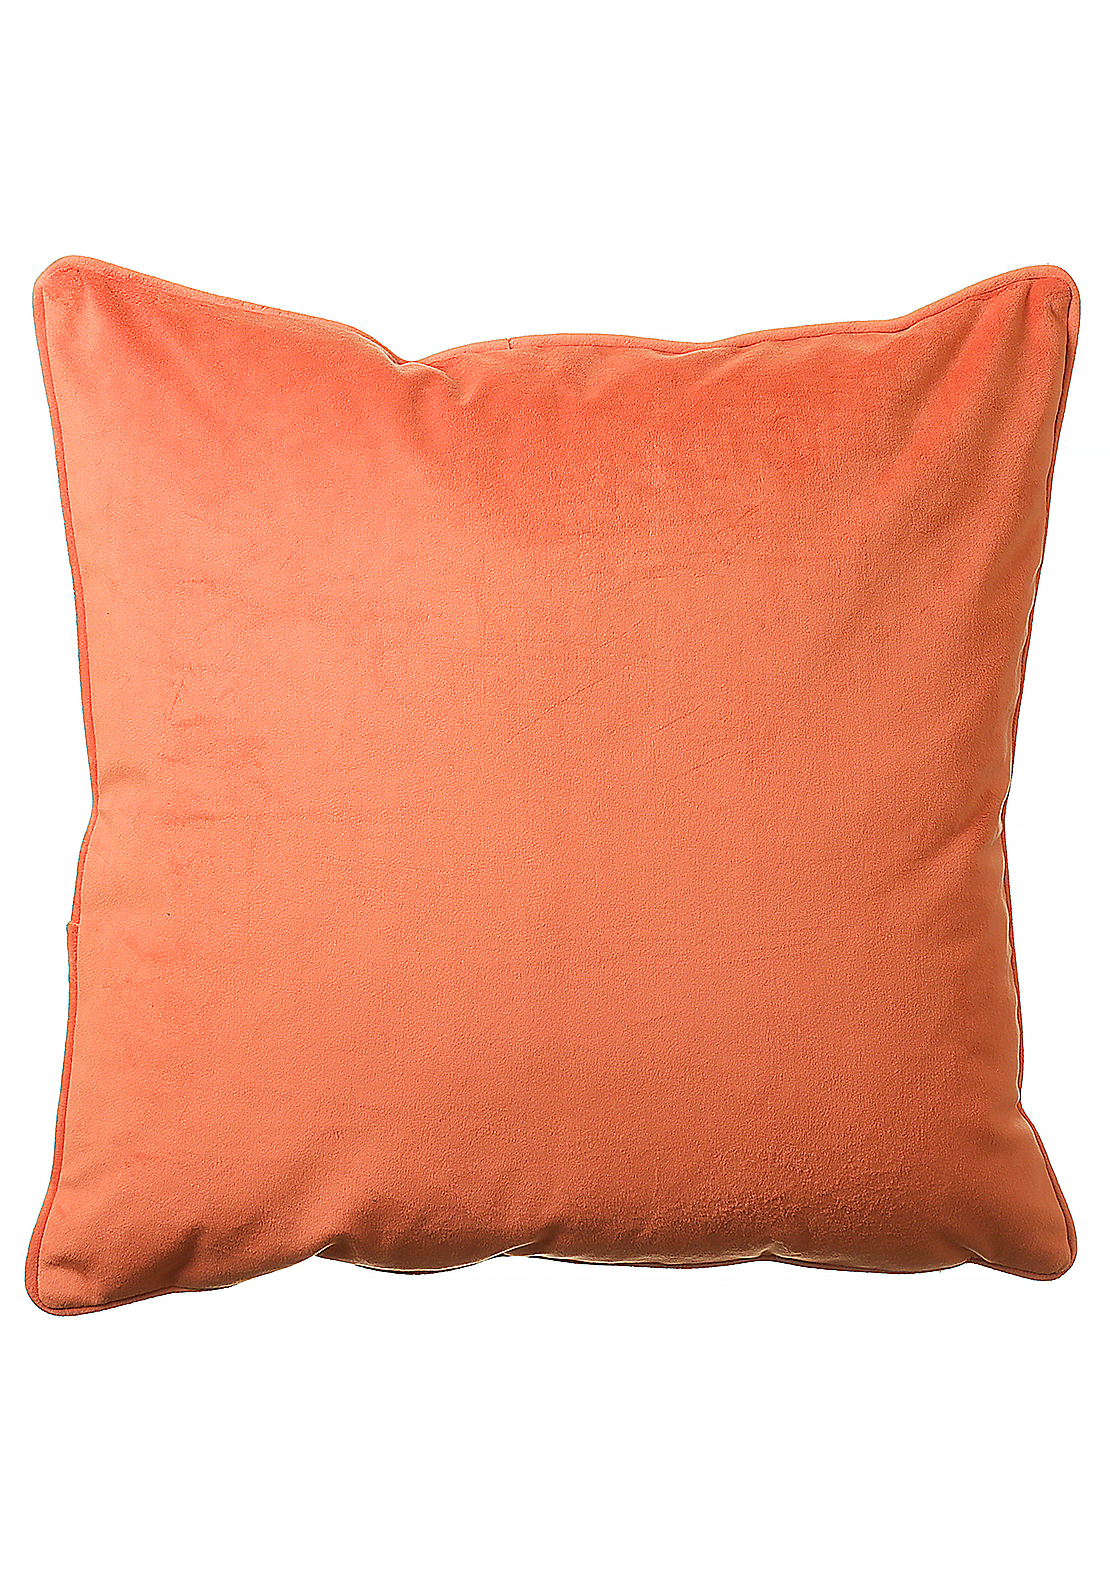 Scatterbox Velour Cushion 45x45, Orange